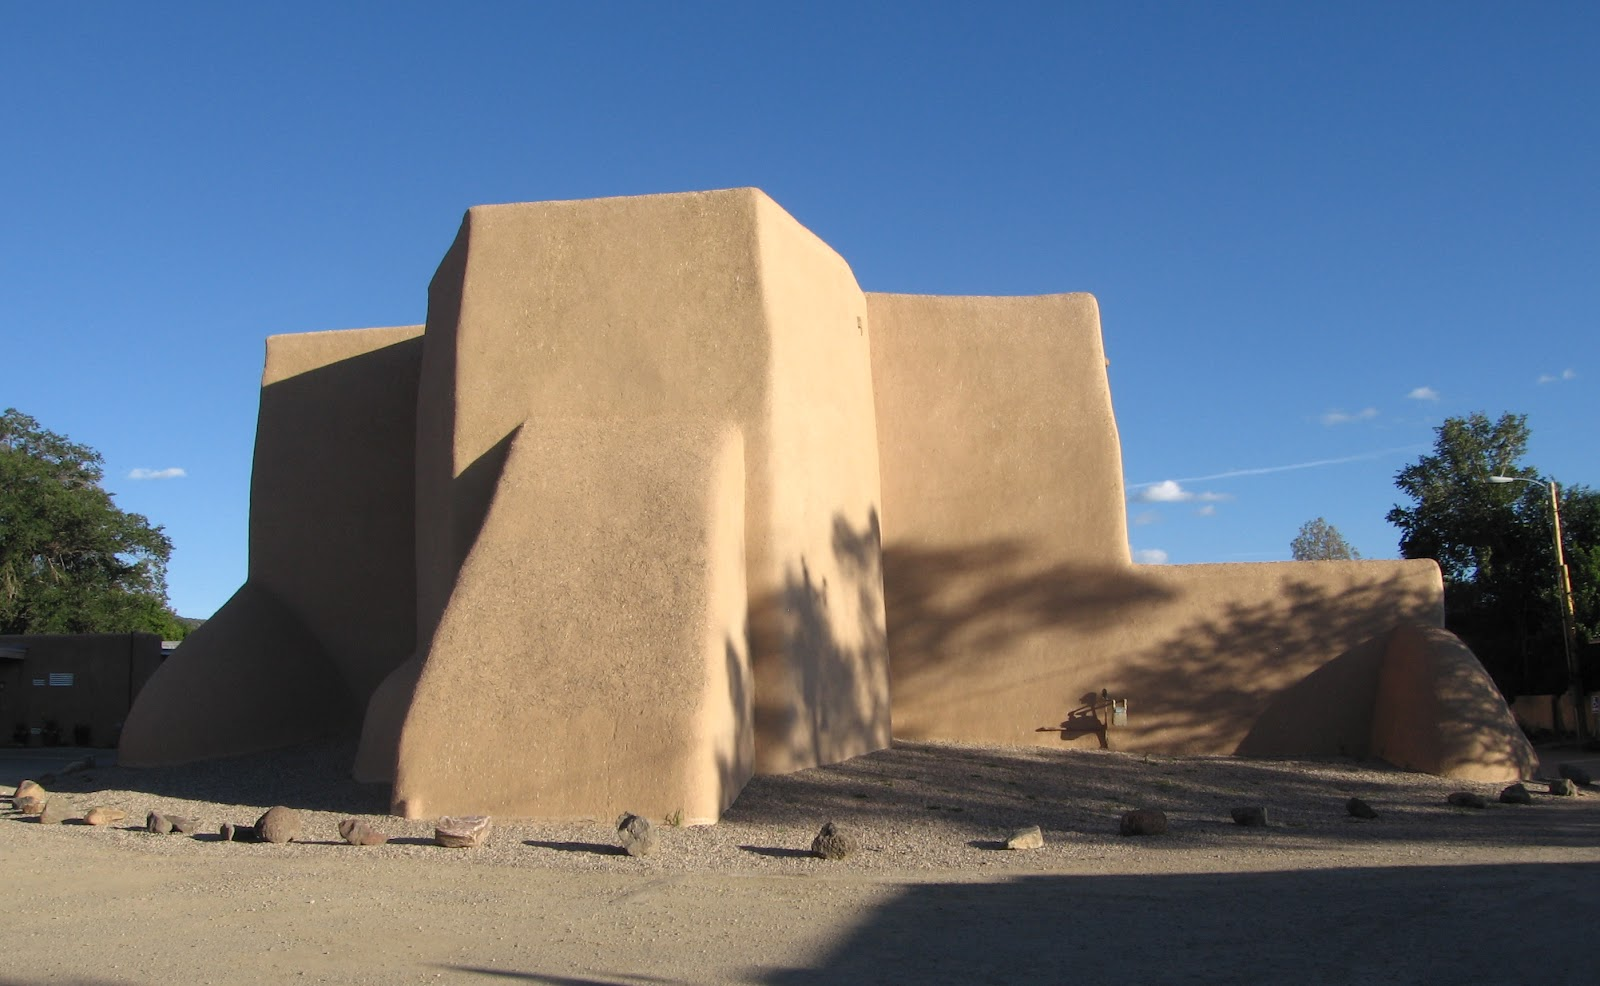 Two graces taos san francisco de asis church ranchos de taos part late in the day around 4pm the shadows from nearby trees fall softly upon the southwest side publicscrutiny Images